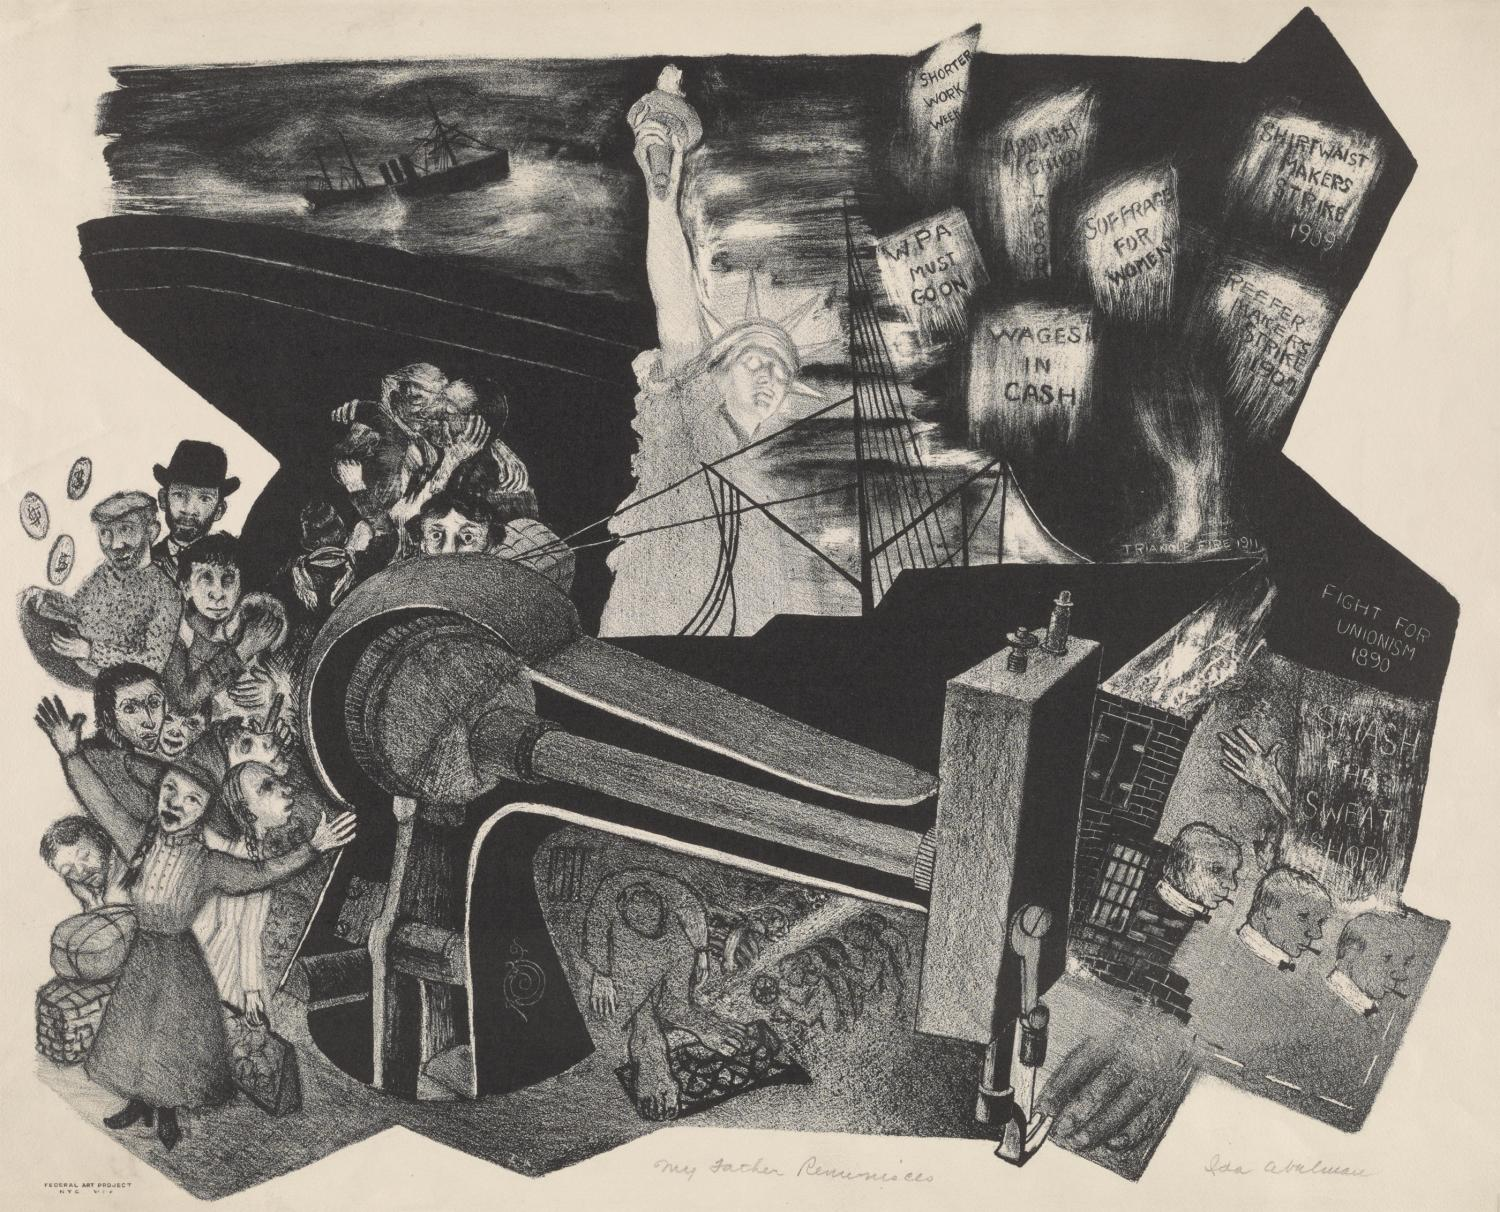 Ida Abelman, My Father Reminisces, 1937. Lithograph. Allocated by the US Government, Commissioned through the New Deal art projects, 1943-4-1.